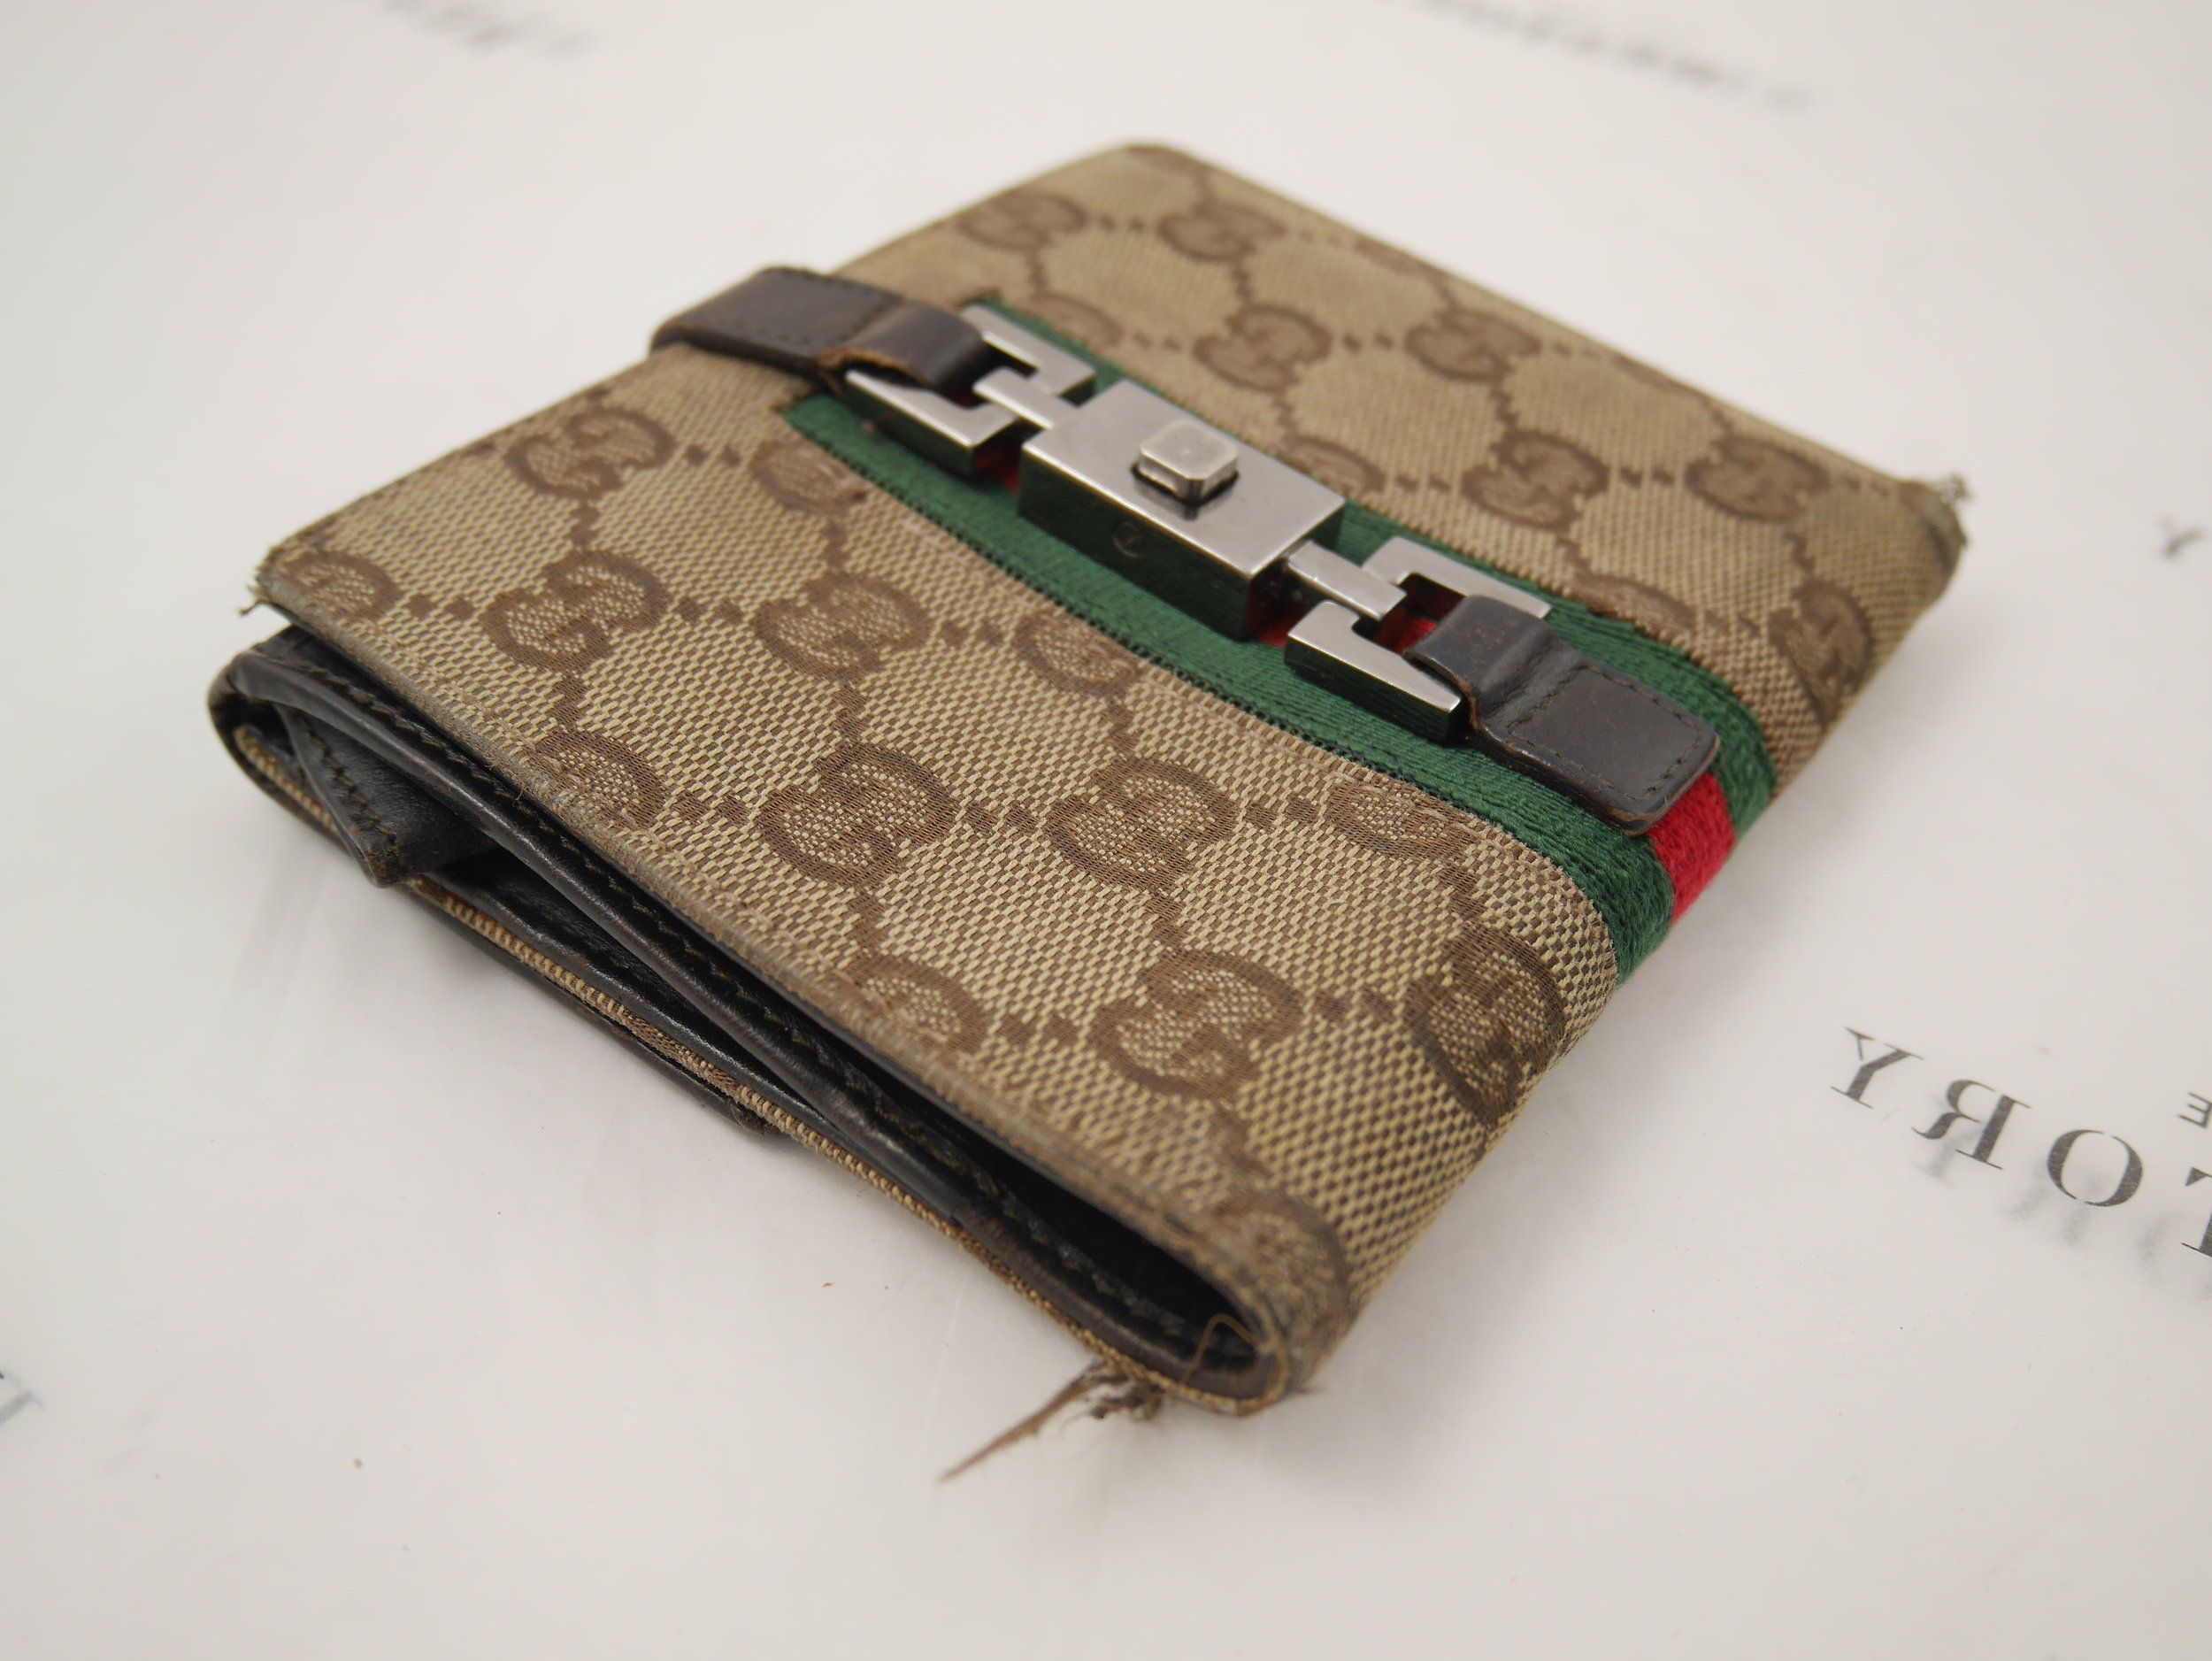 Before: frayed corners on the Gucci wallet